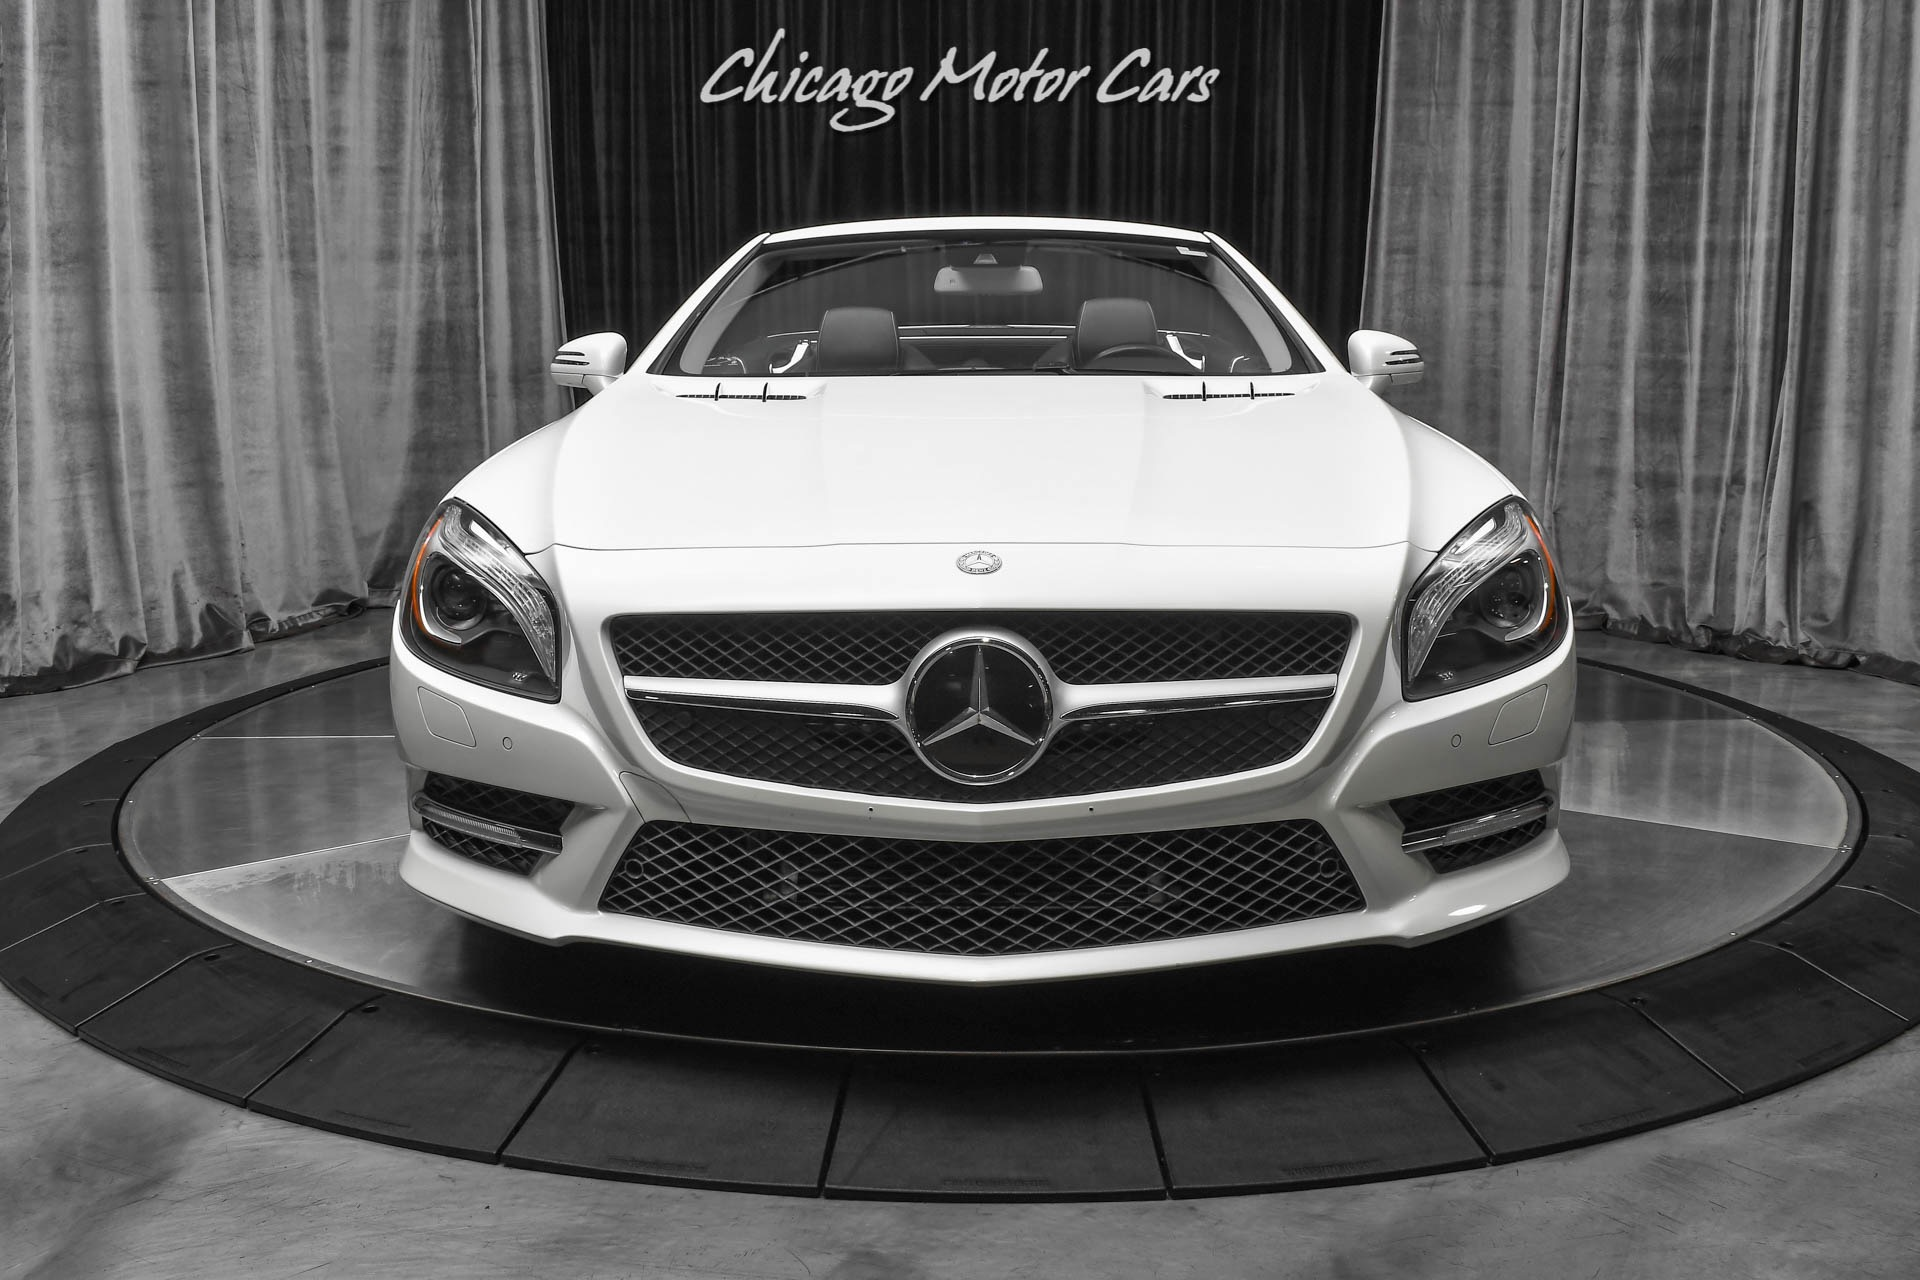 Used-2013-Mercedes-Benz-SL-Class-SL-550-Premium-Package-1-Driver-Assistance-Package-Sport-Wheel-Package